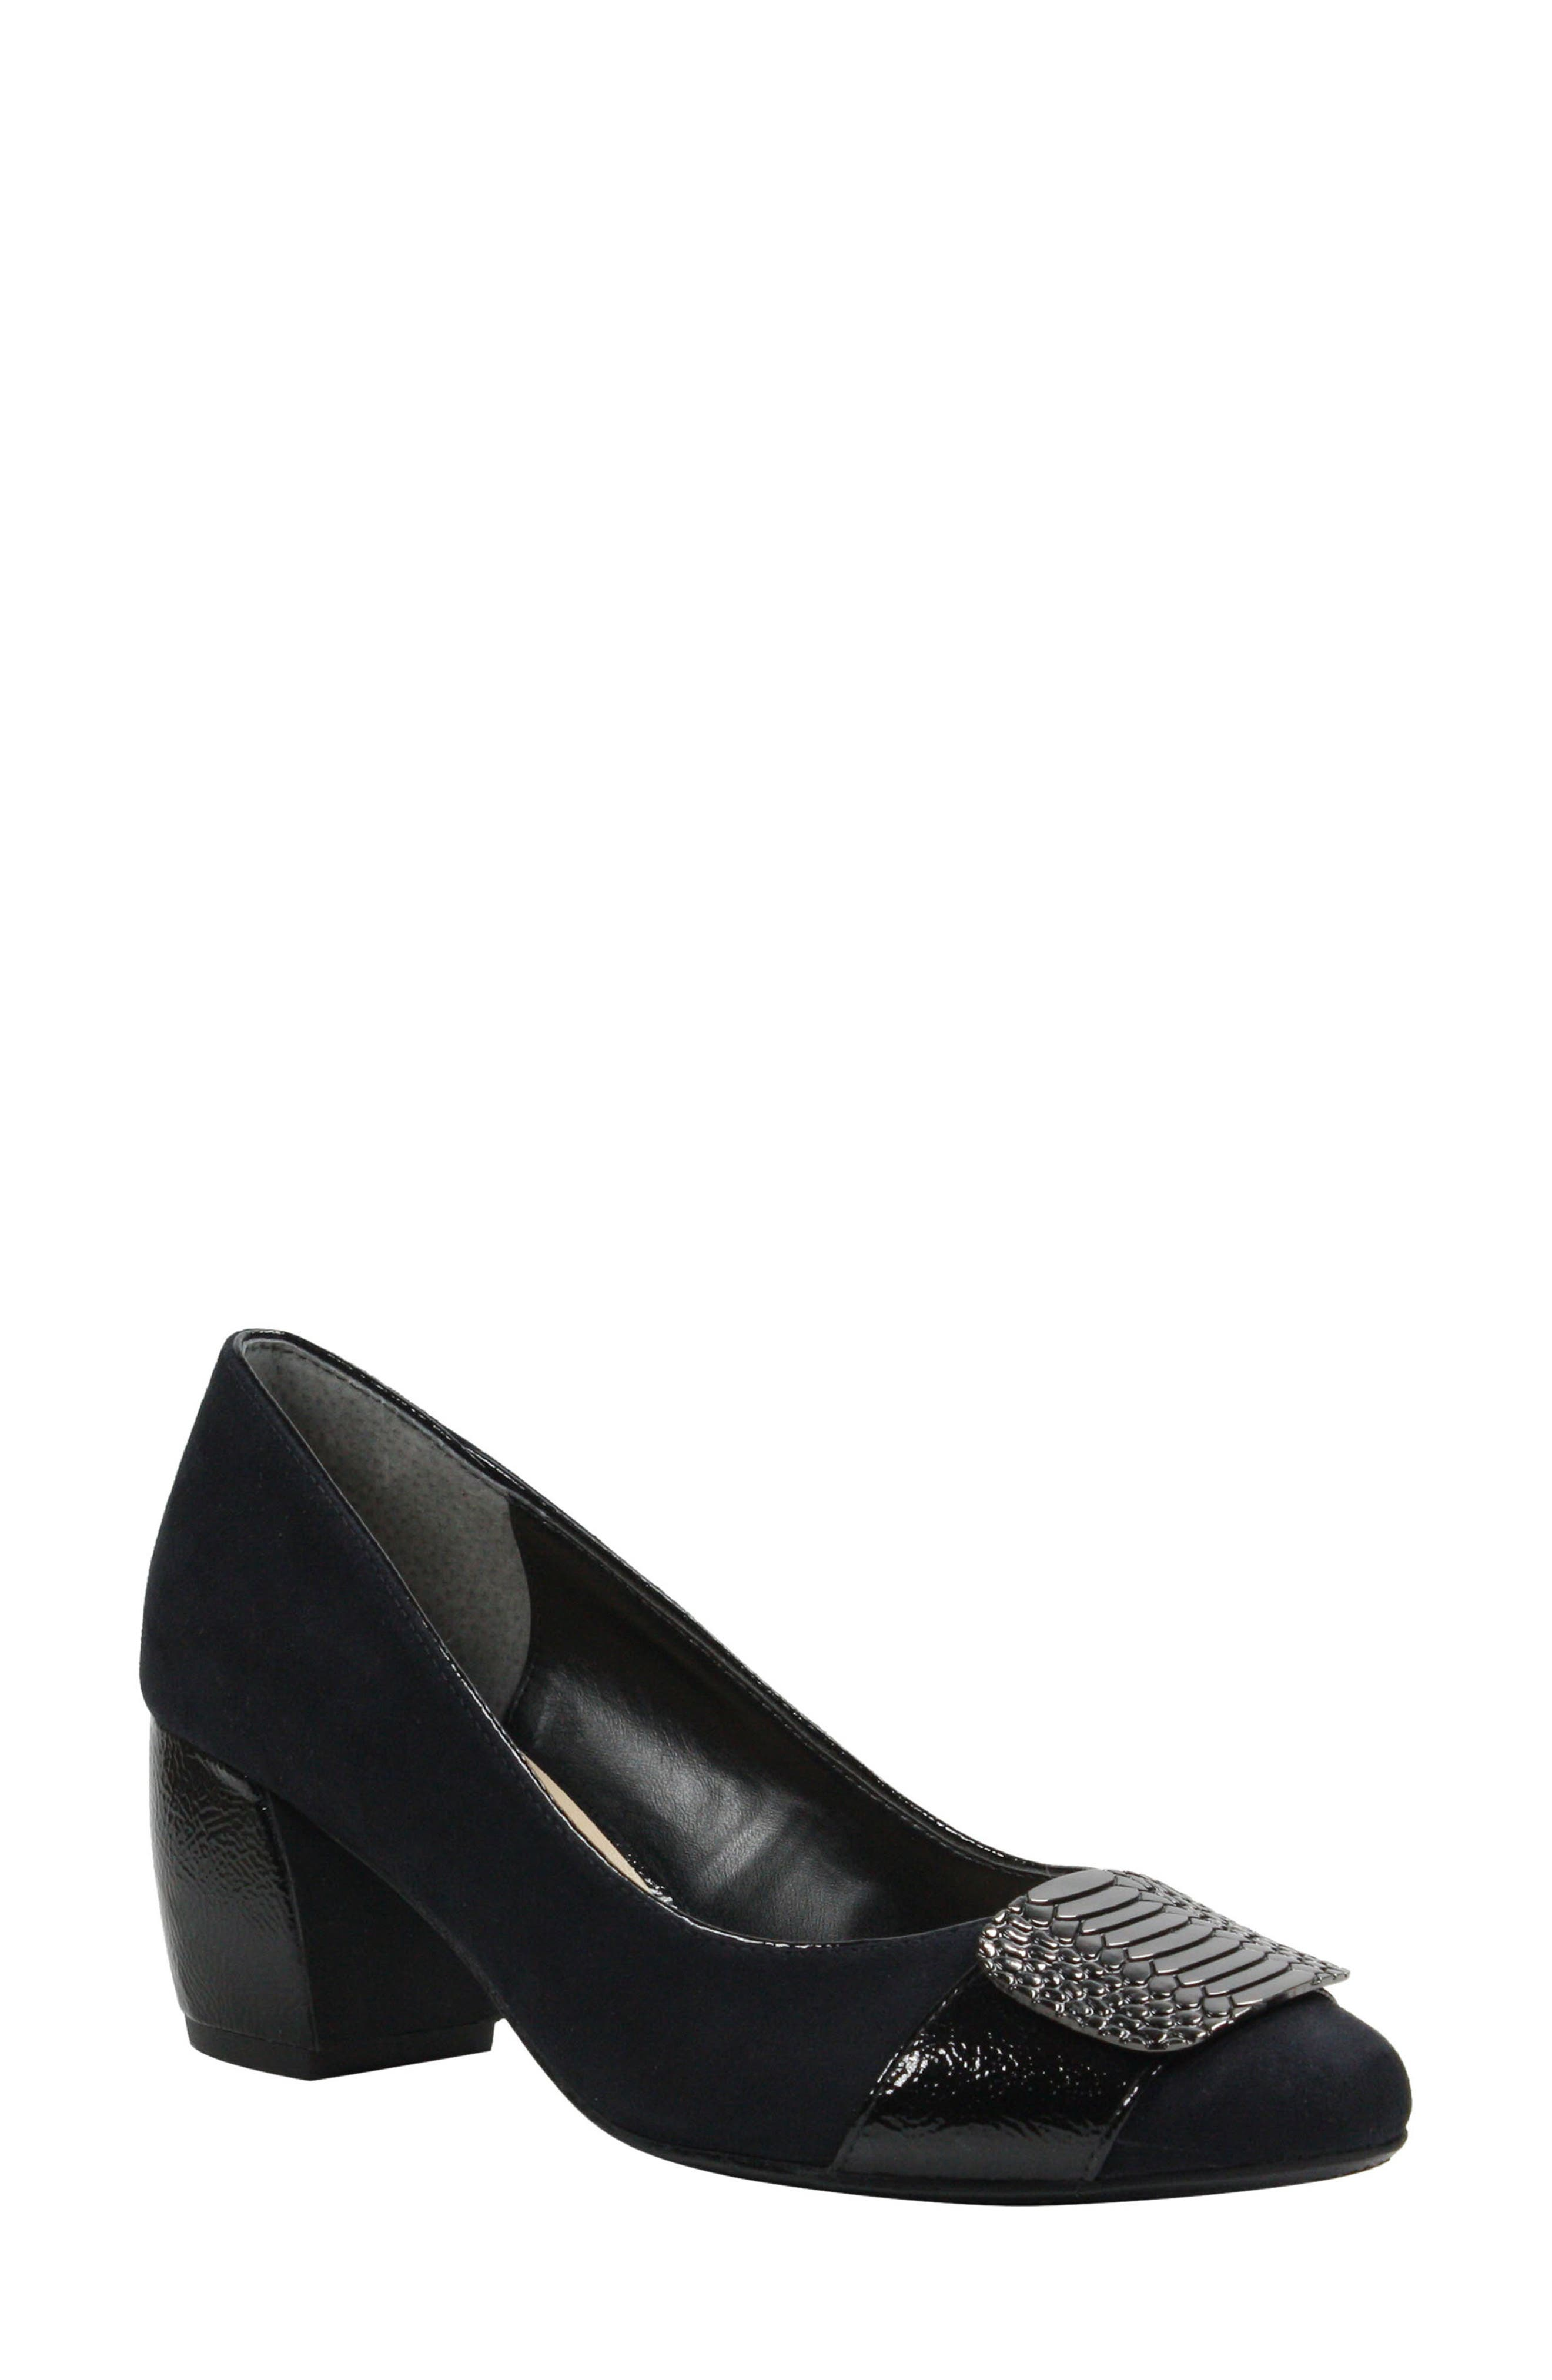 Langeley Pump,                             Main thumbnail 1, color,                             BLACK FABRIC